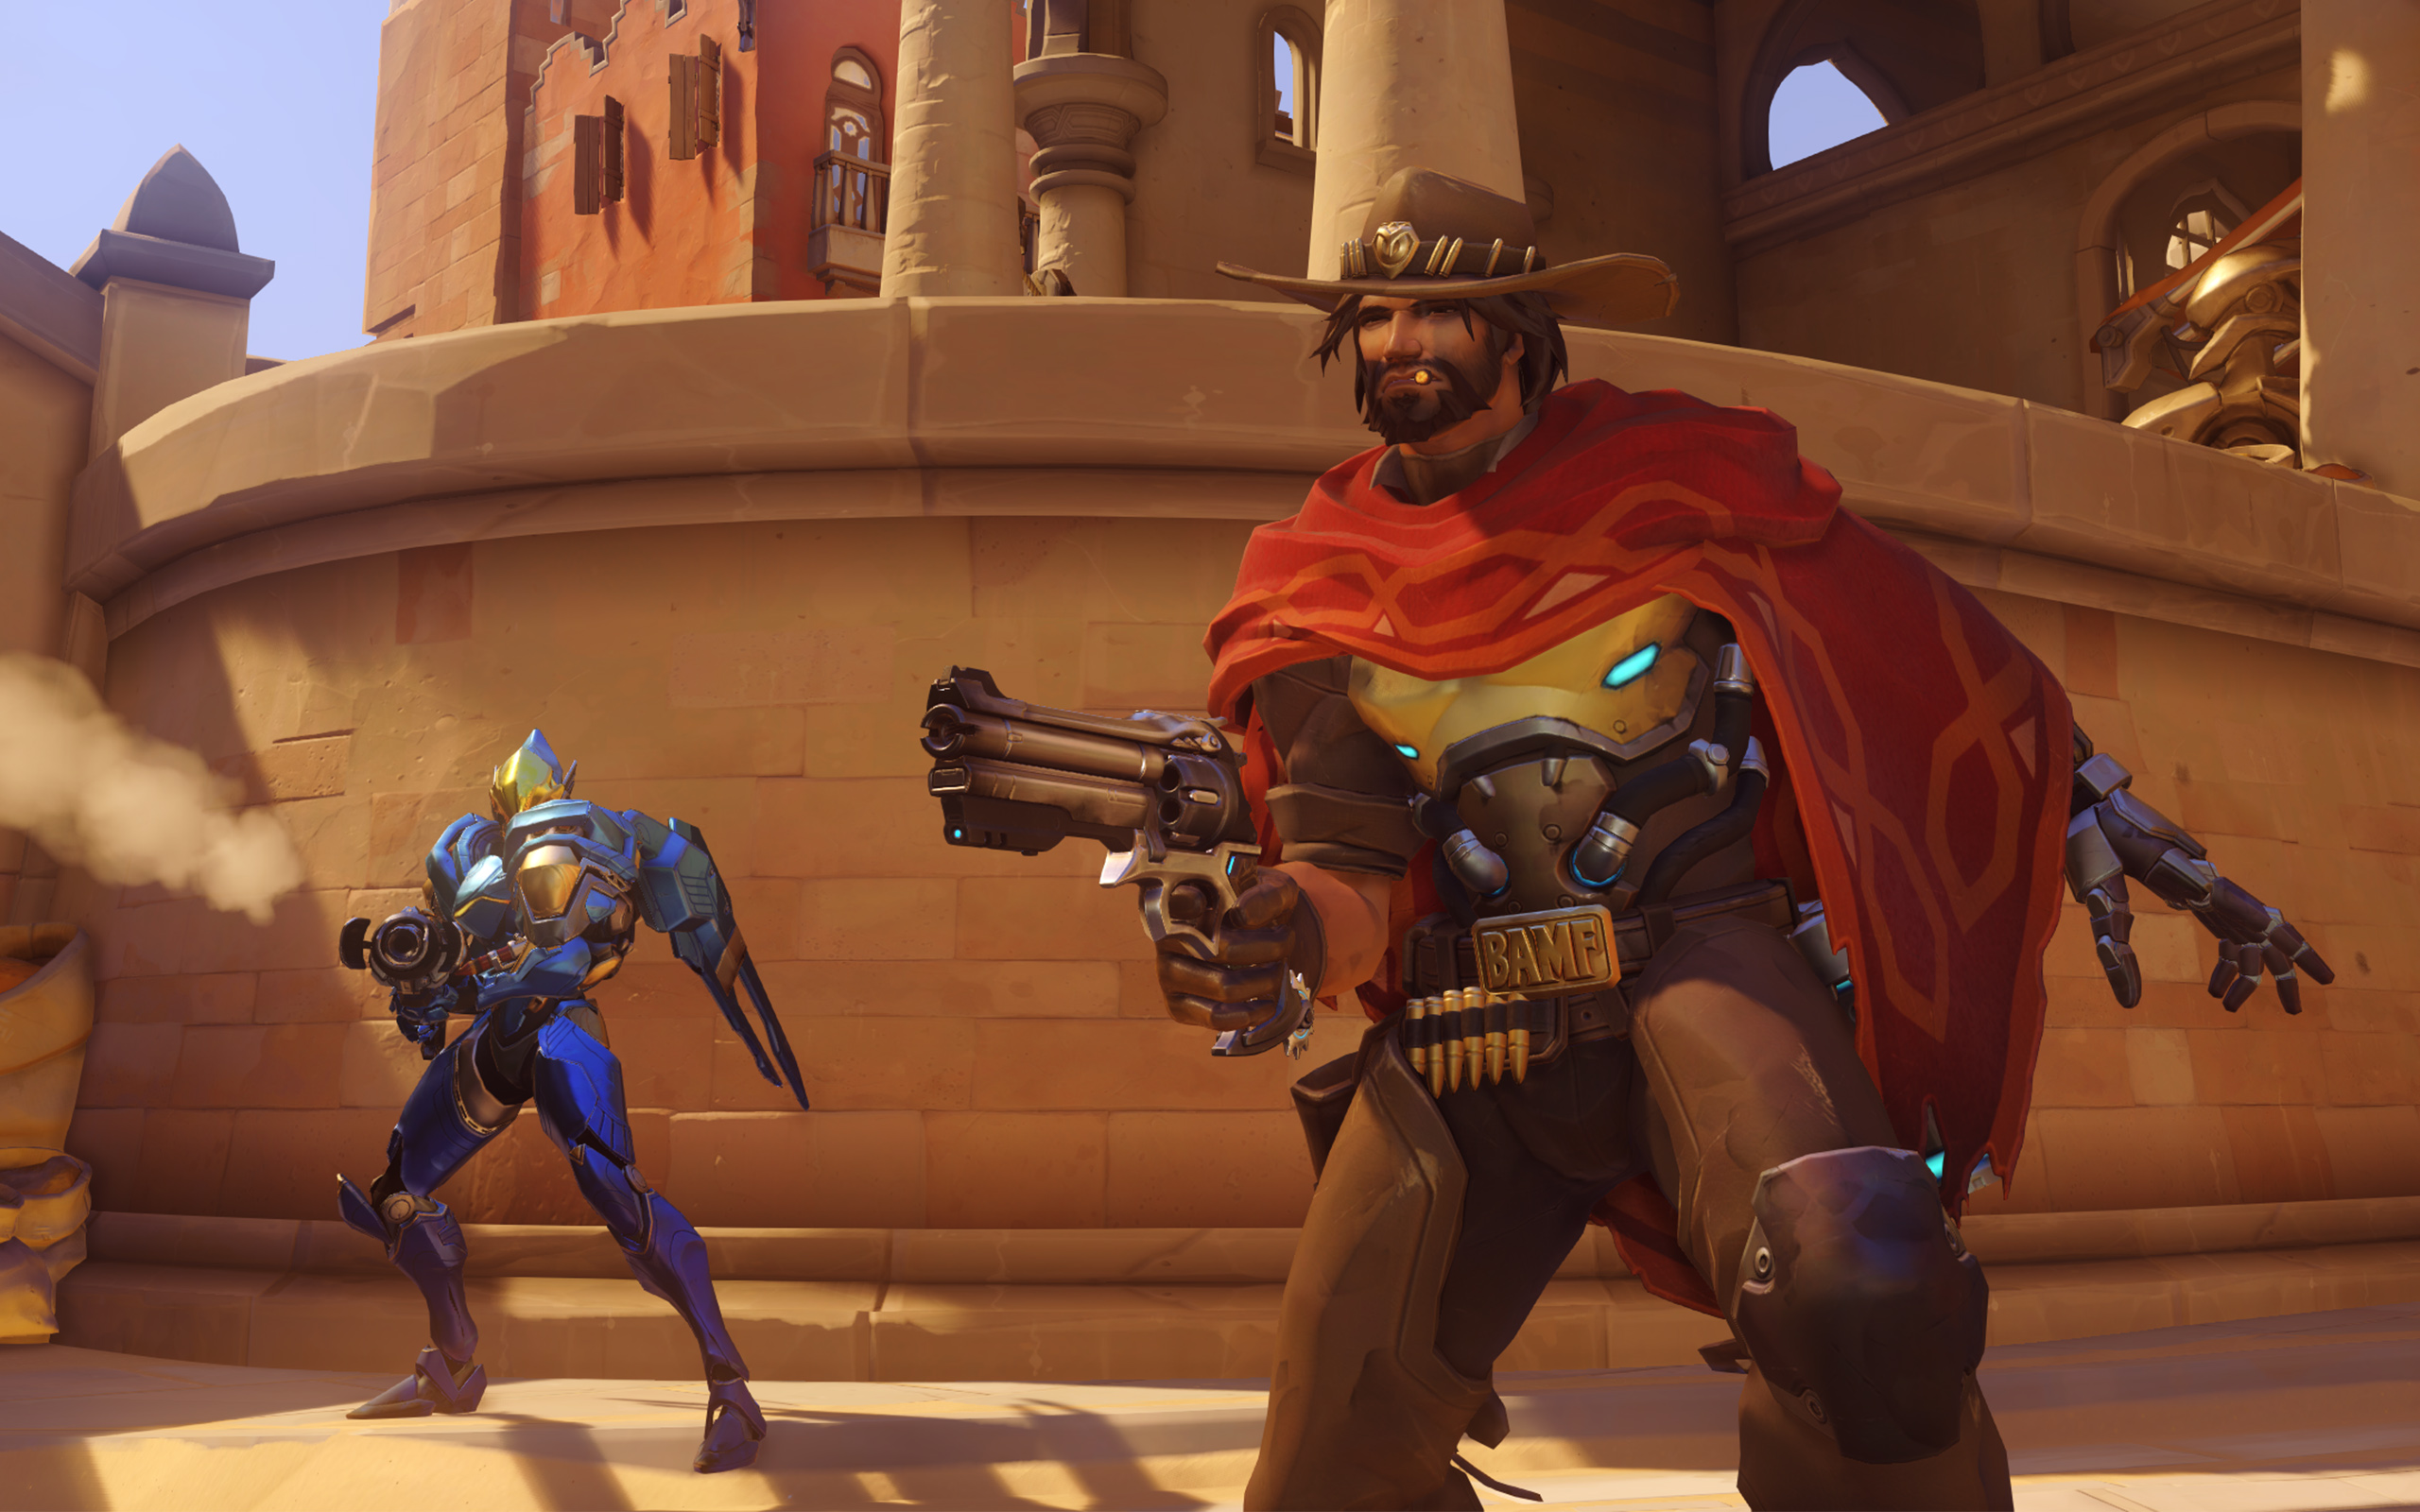 McCree aims his six-shooter with Pharah in the background in a screenshot from Overwatch